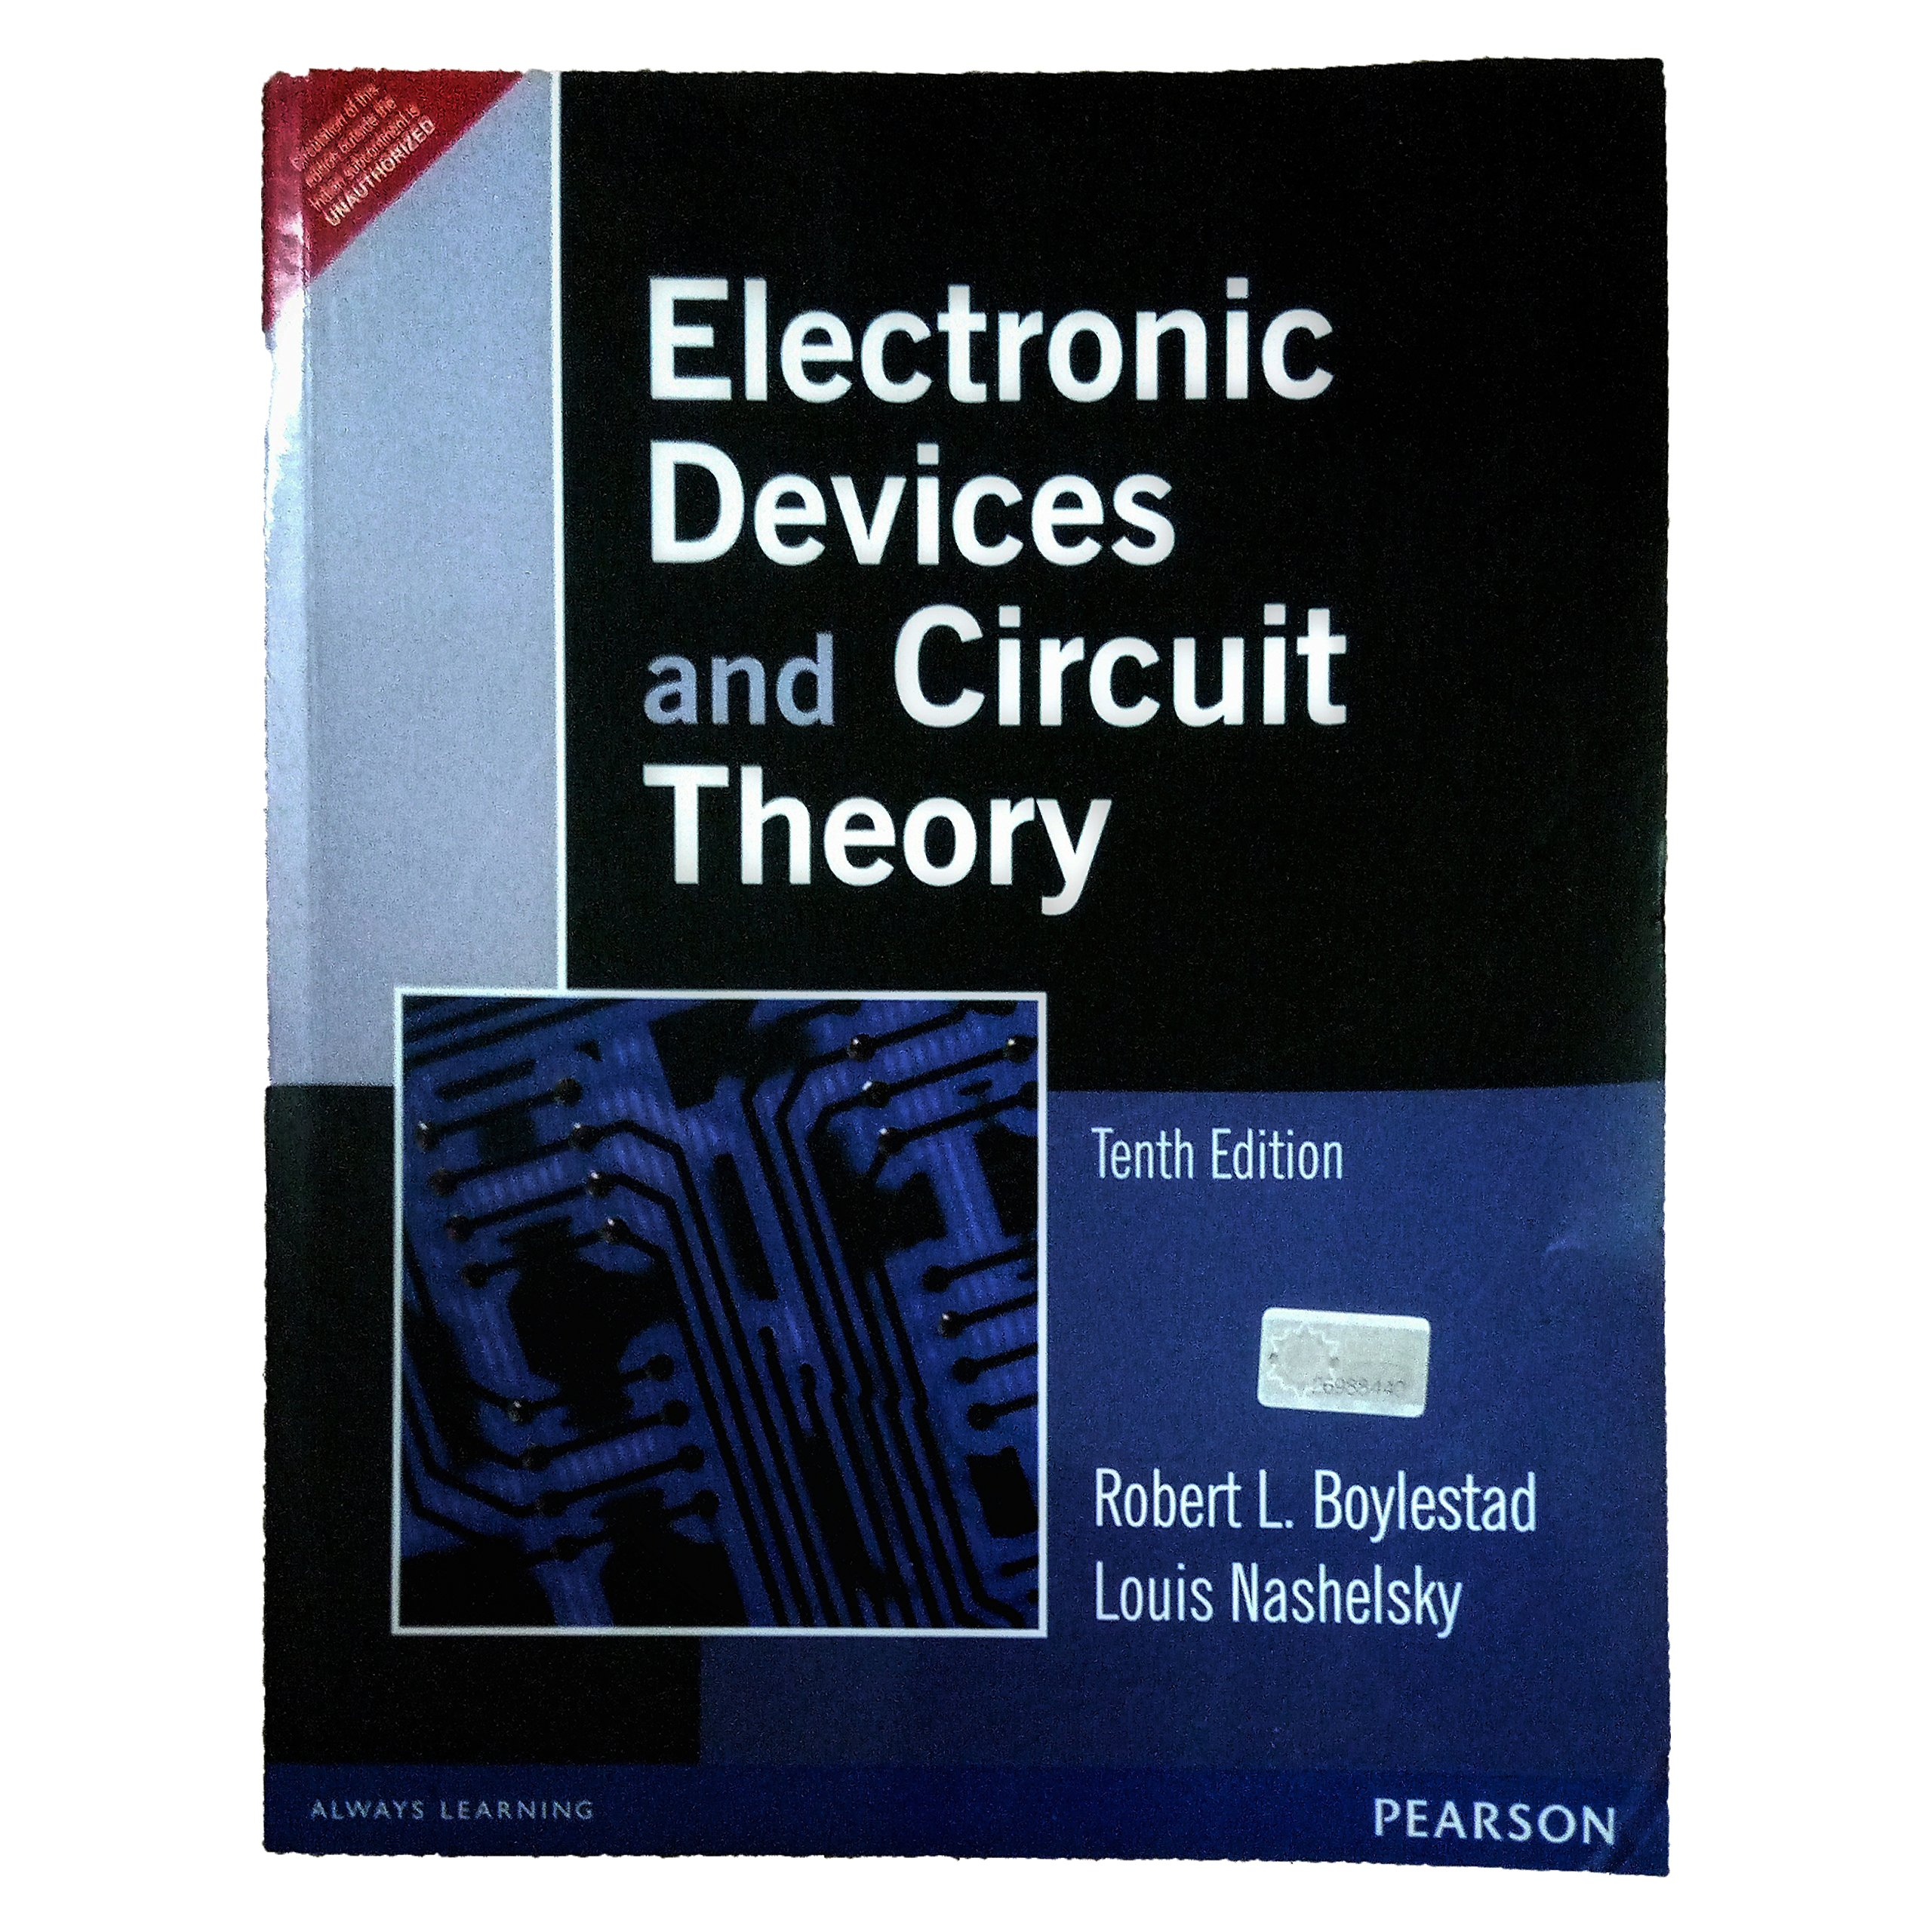 buy electronic devices and circuit theory book online at low pricesfollow the author